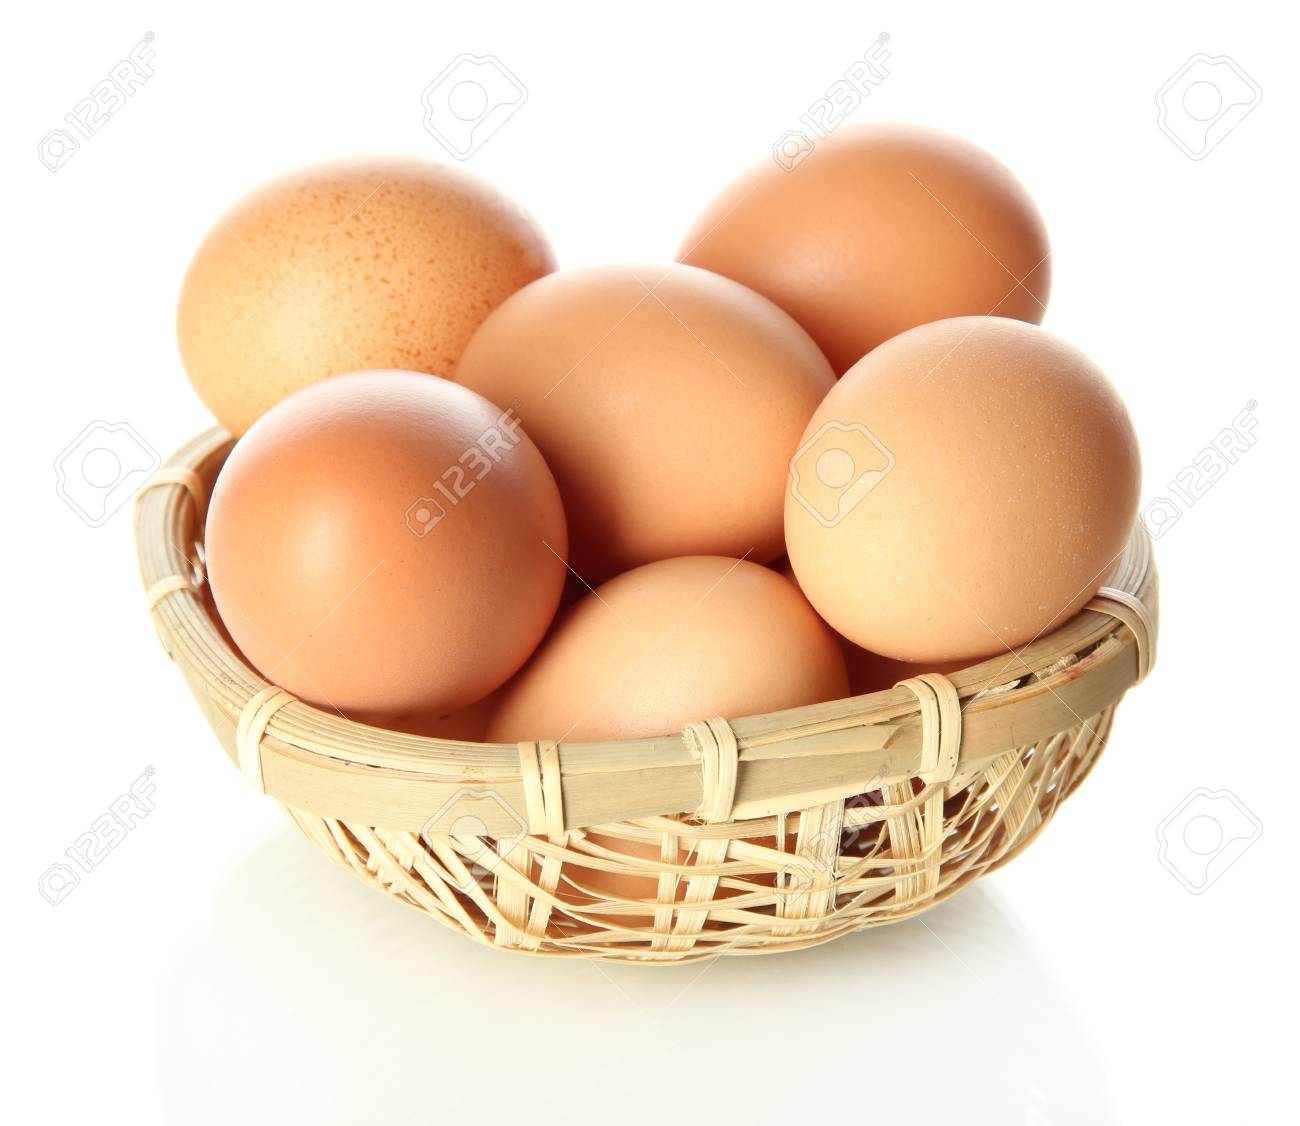 Many eggs in basket isolated on white Stock Photo - 17760875